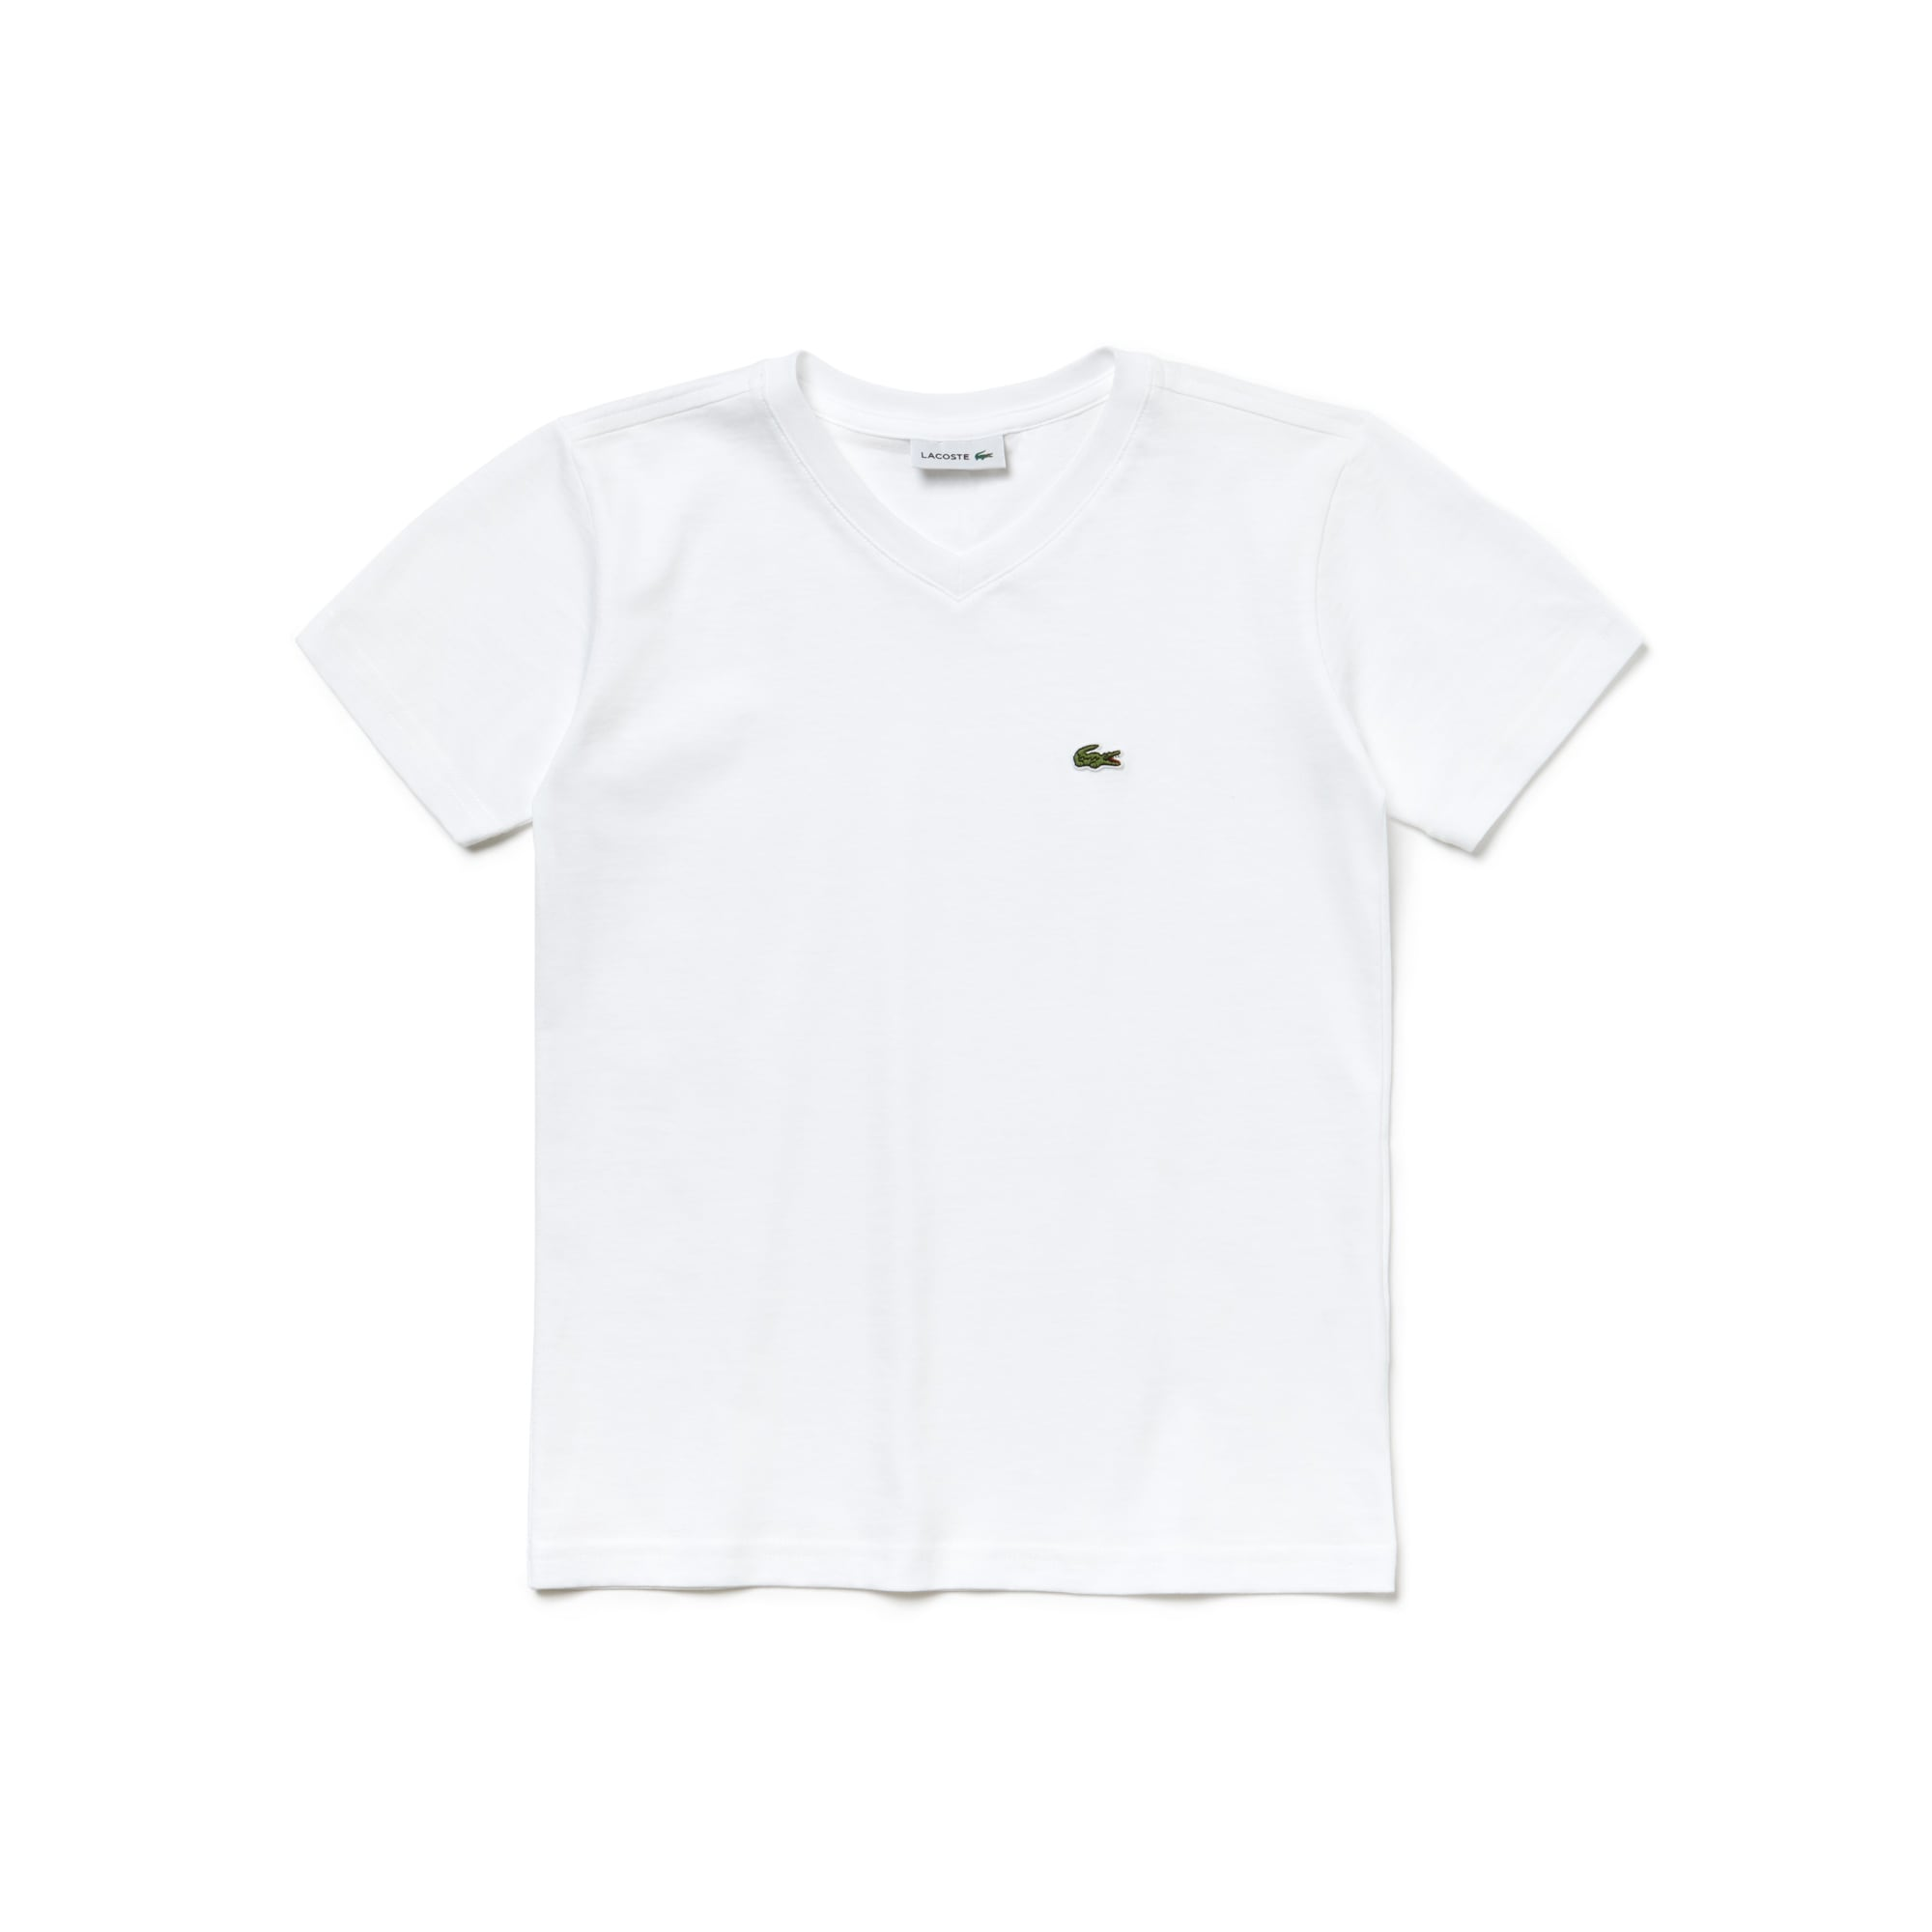 Boy's V-Neck Cotton T-Shirt